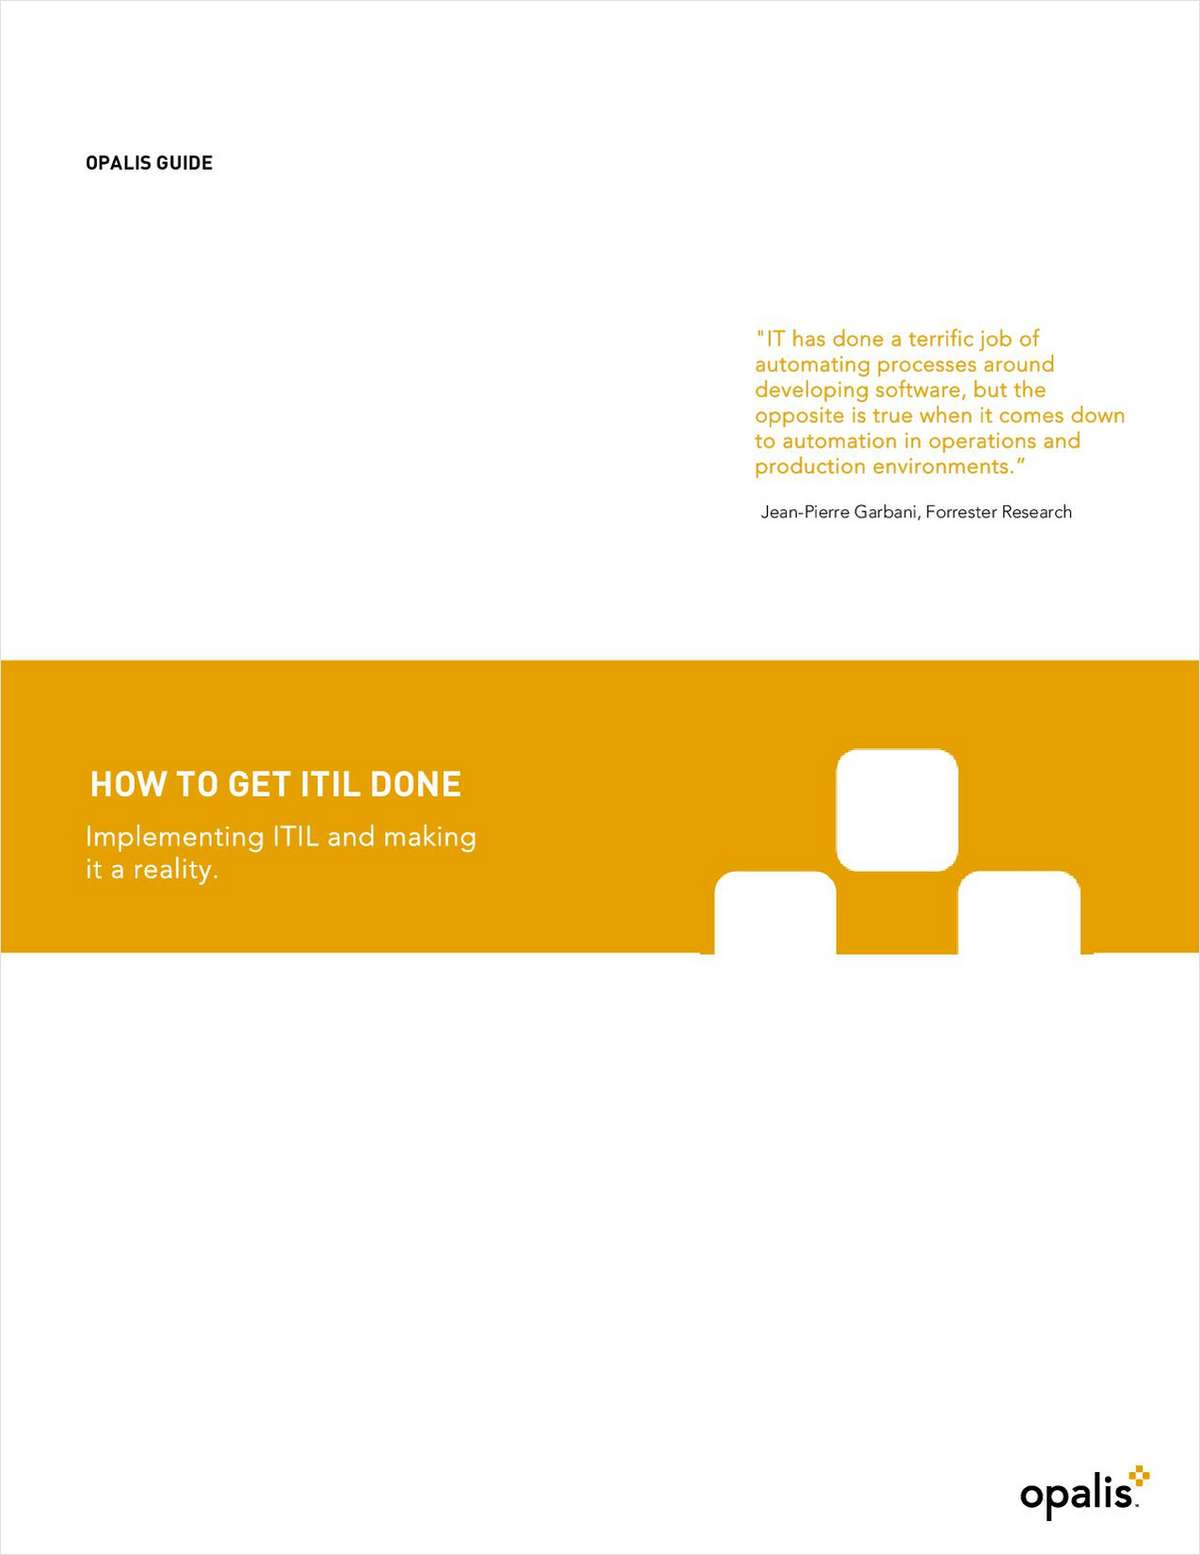 How to Get ITIL Done